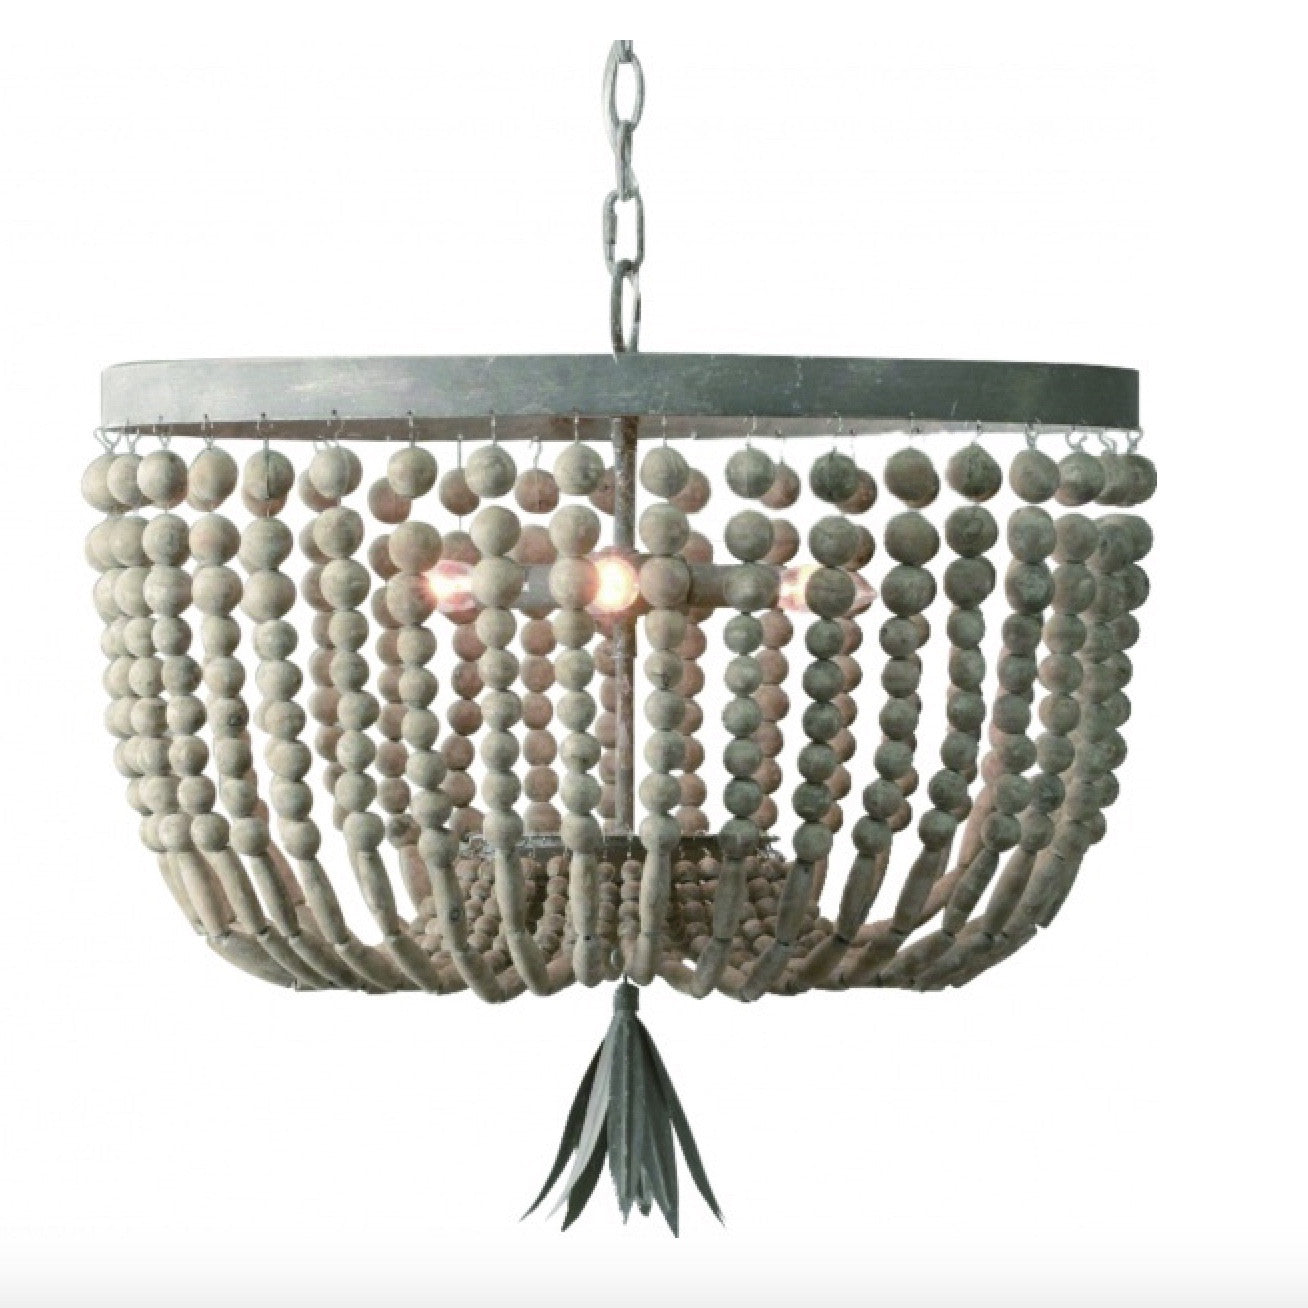 Wooden Beaded Bag Chandelier